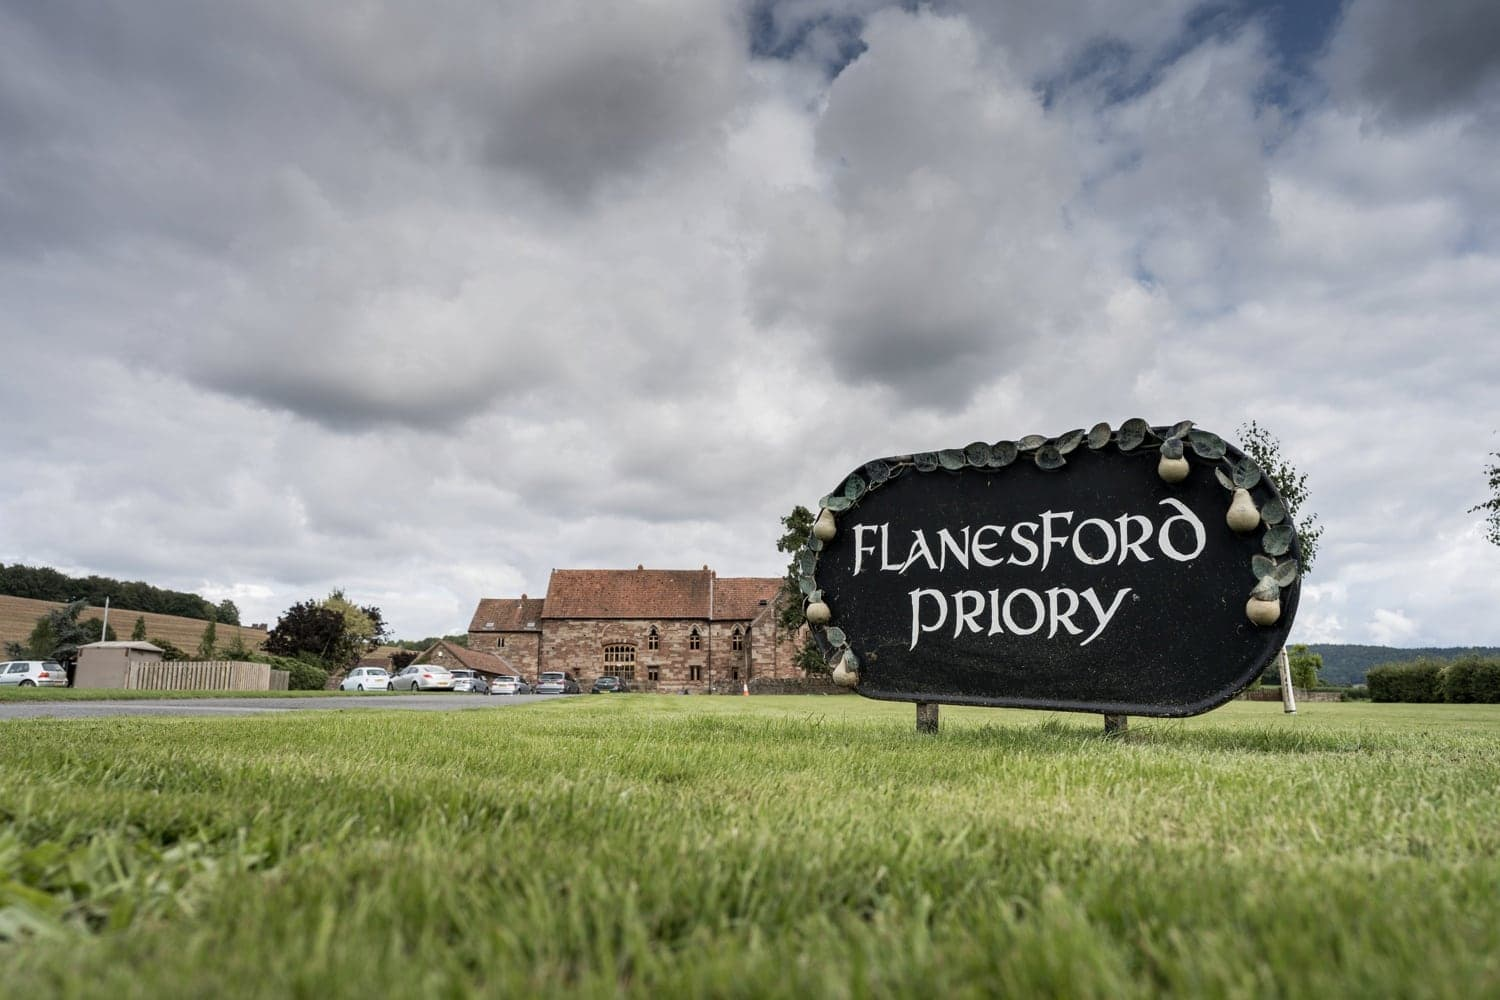 Herefordshire wedding venue Flanesford Priory